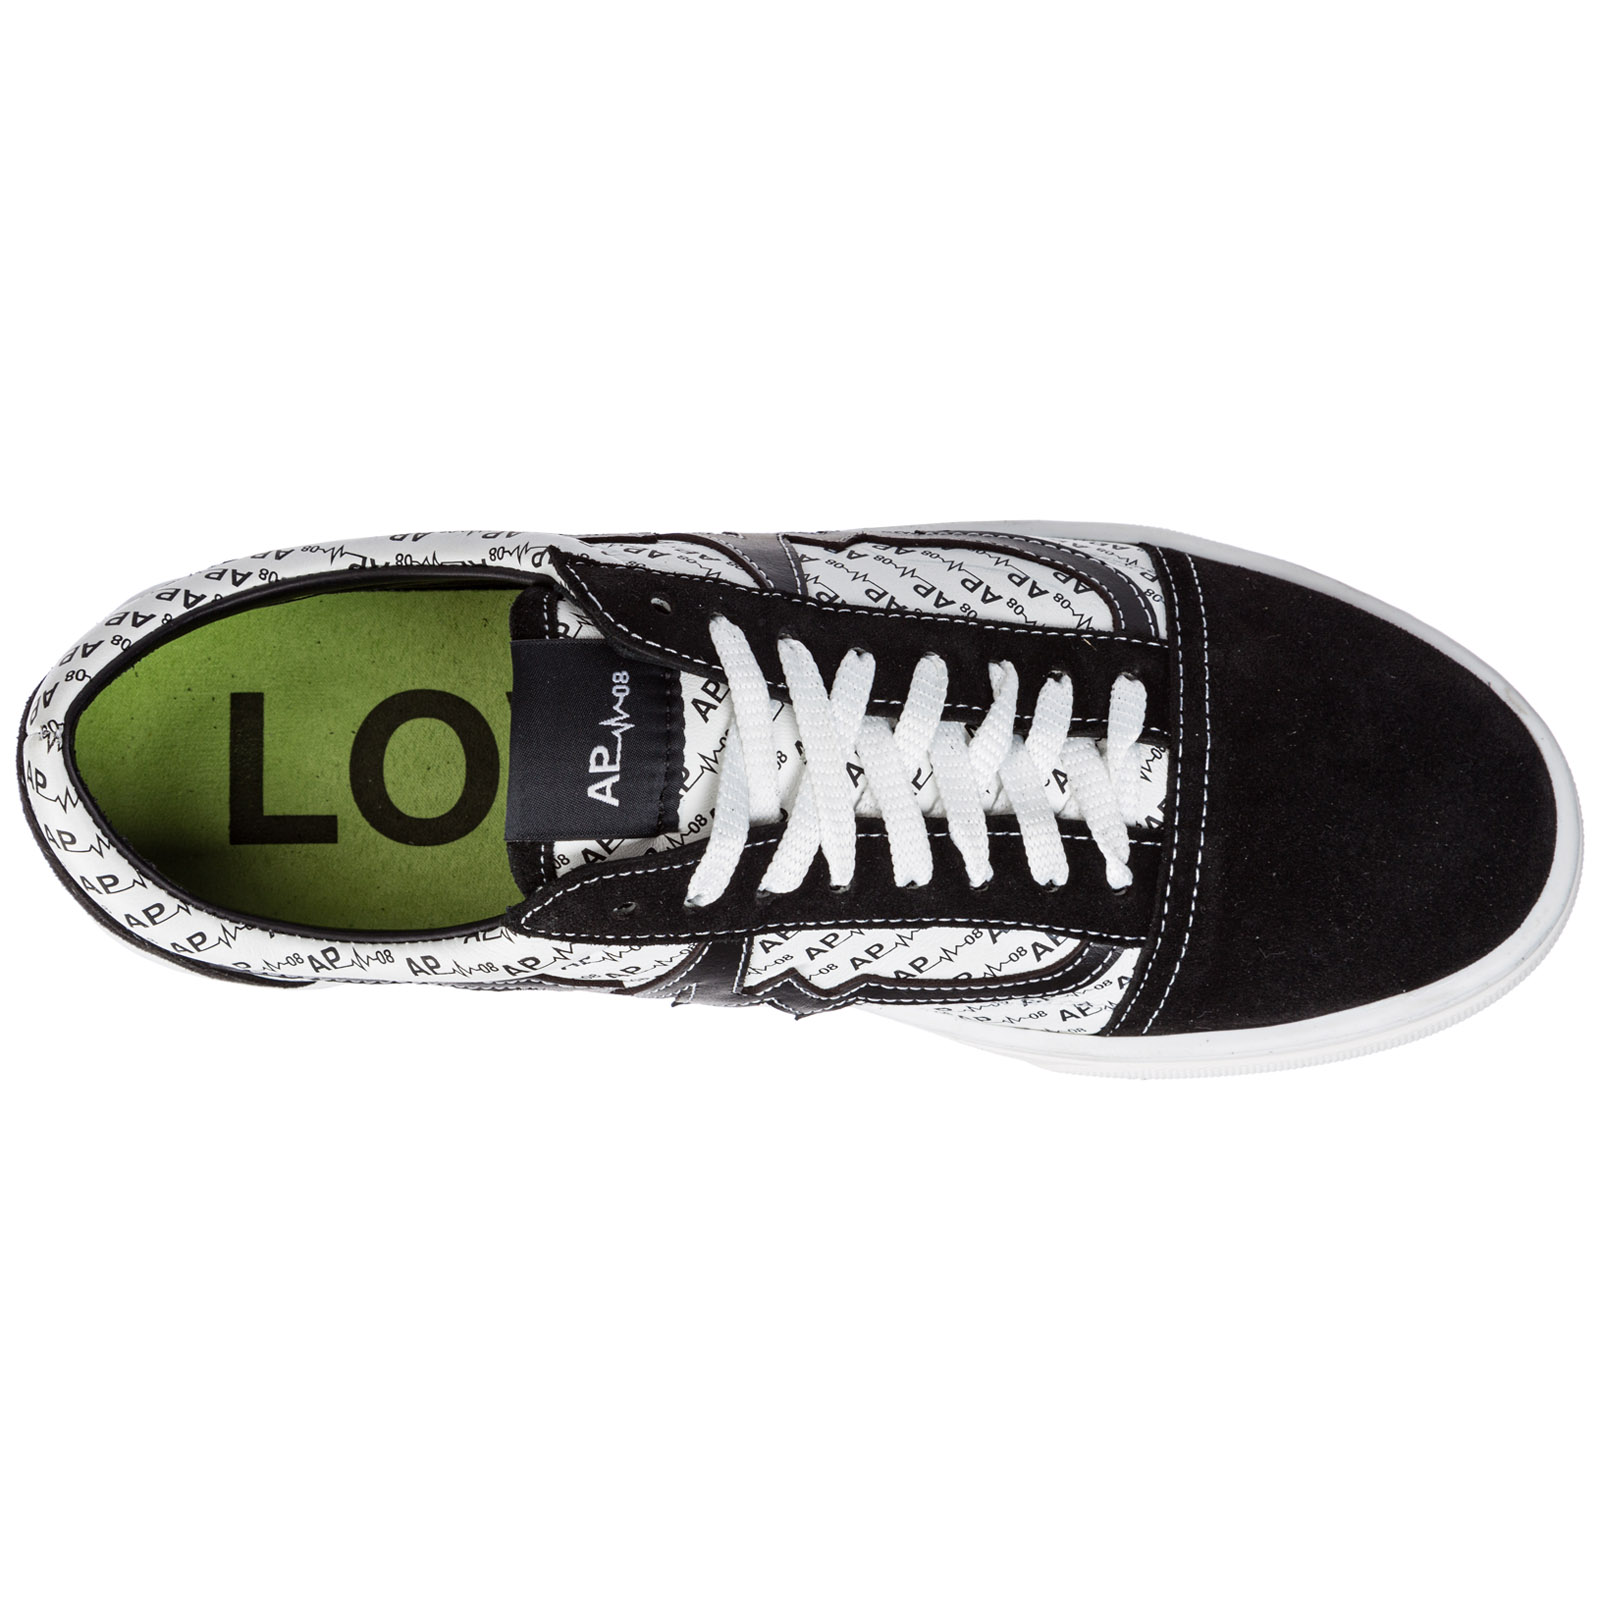 b9545731ed471 Women's shoes leather trainers sneakers monogram